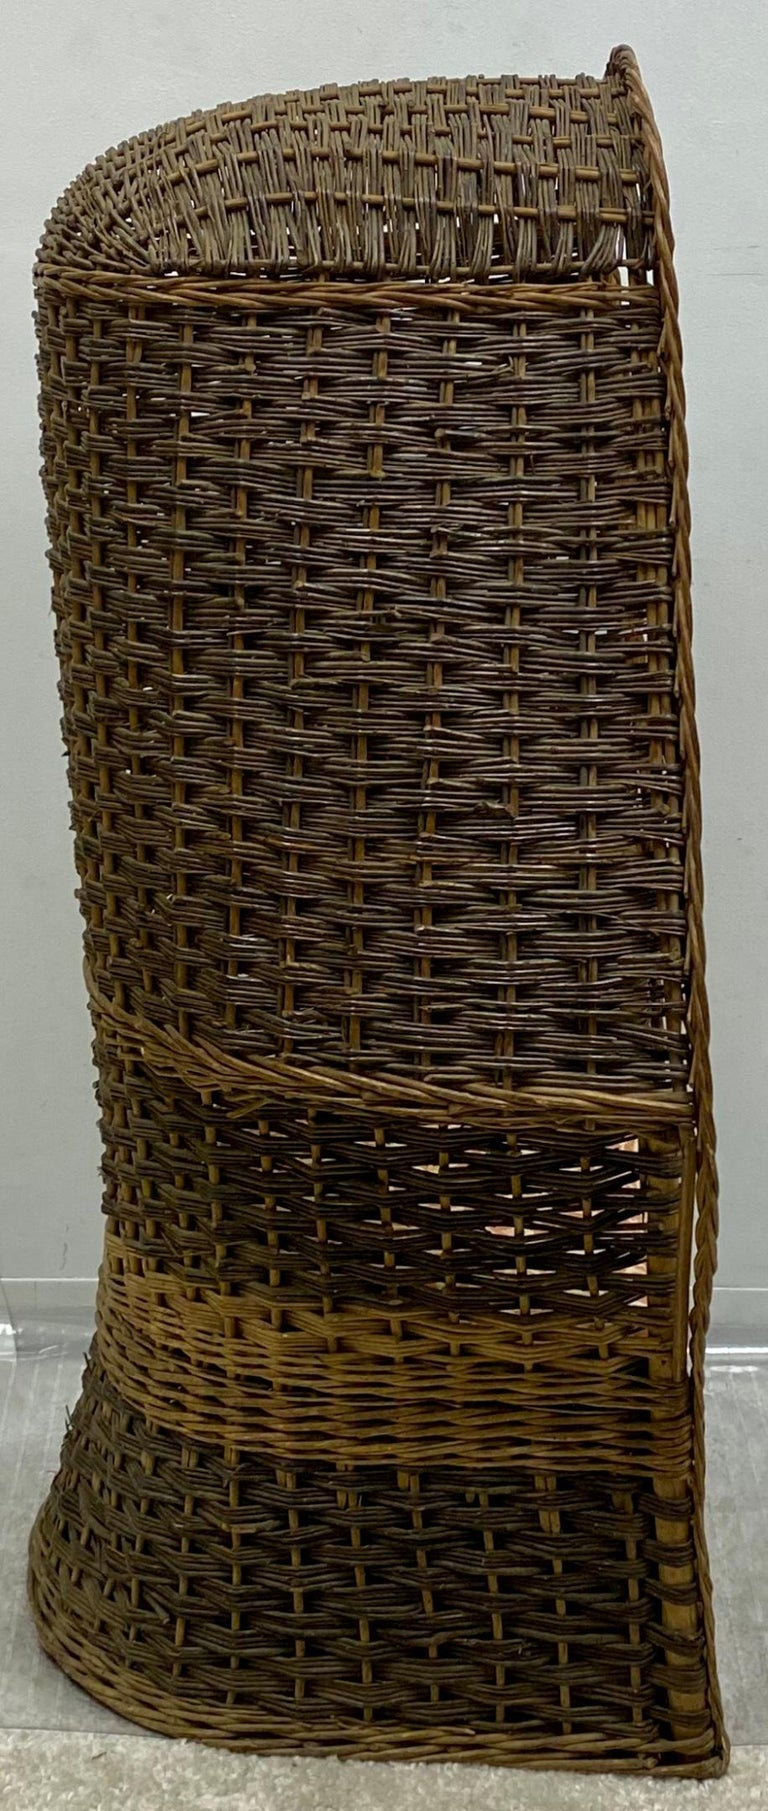 This is a 1930s hand woven wicker porter's chair. It is a two tone weave and is in very good condition. An unusual find!